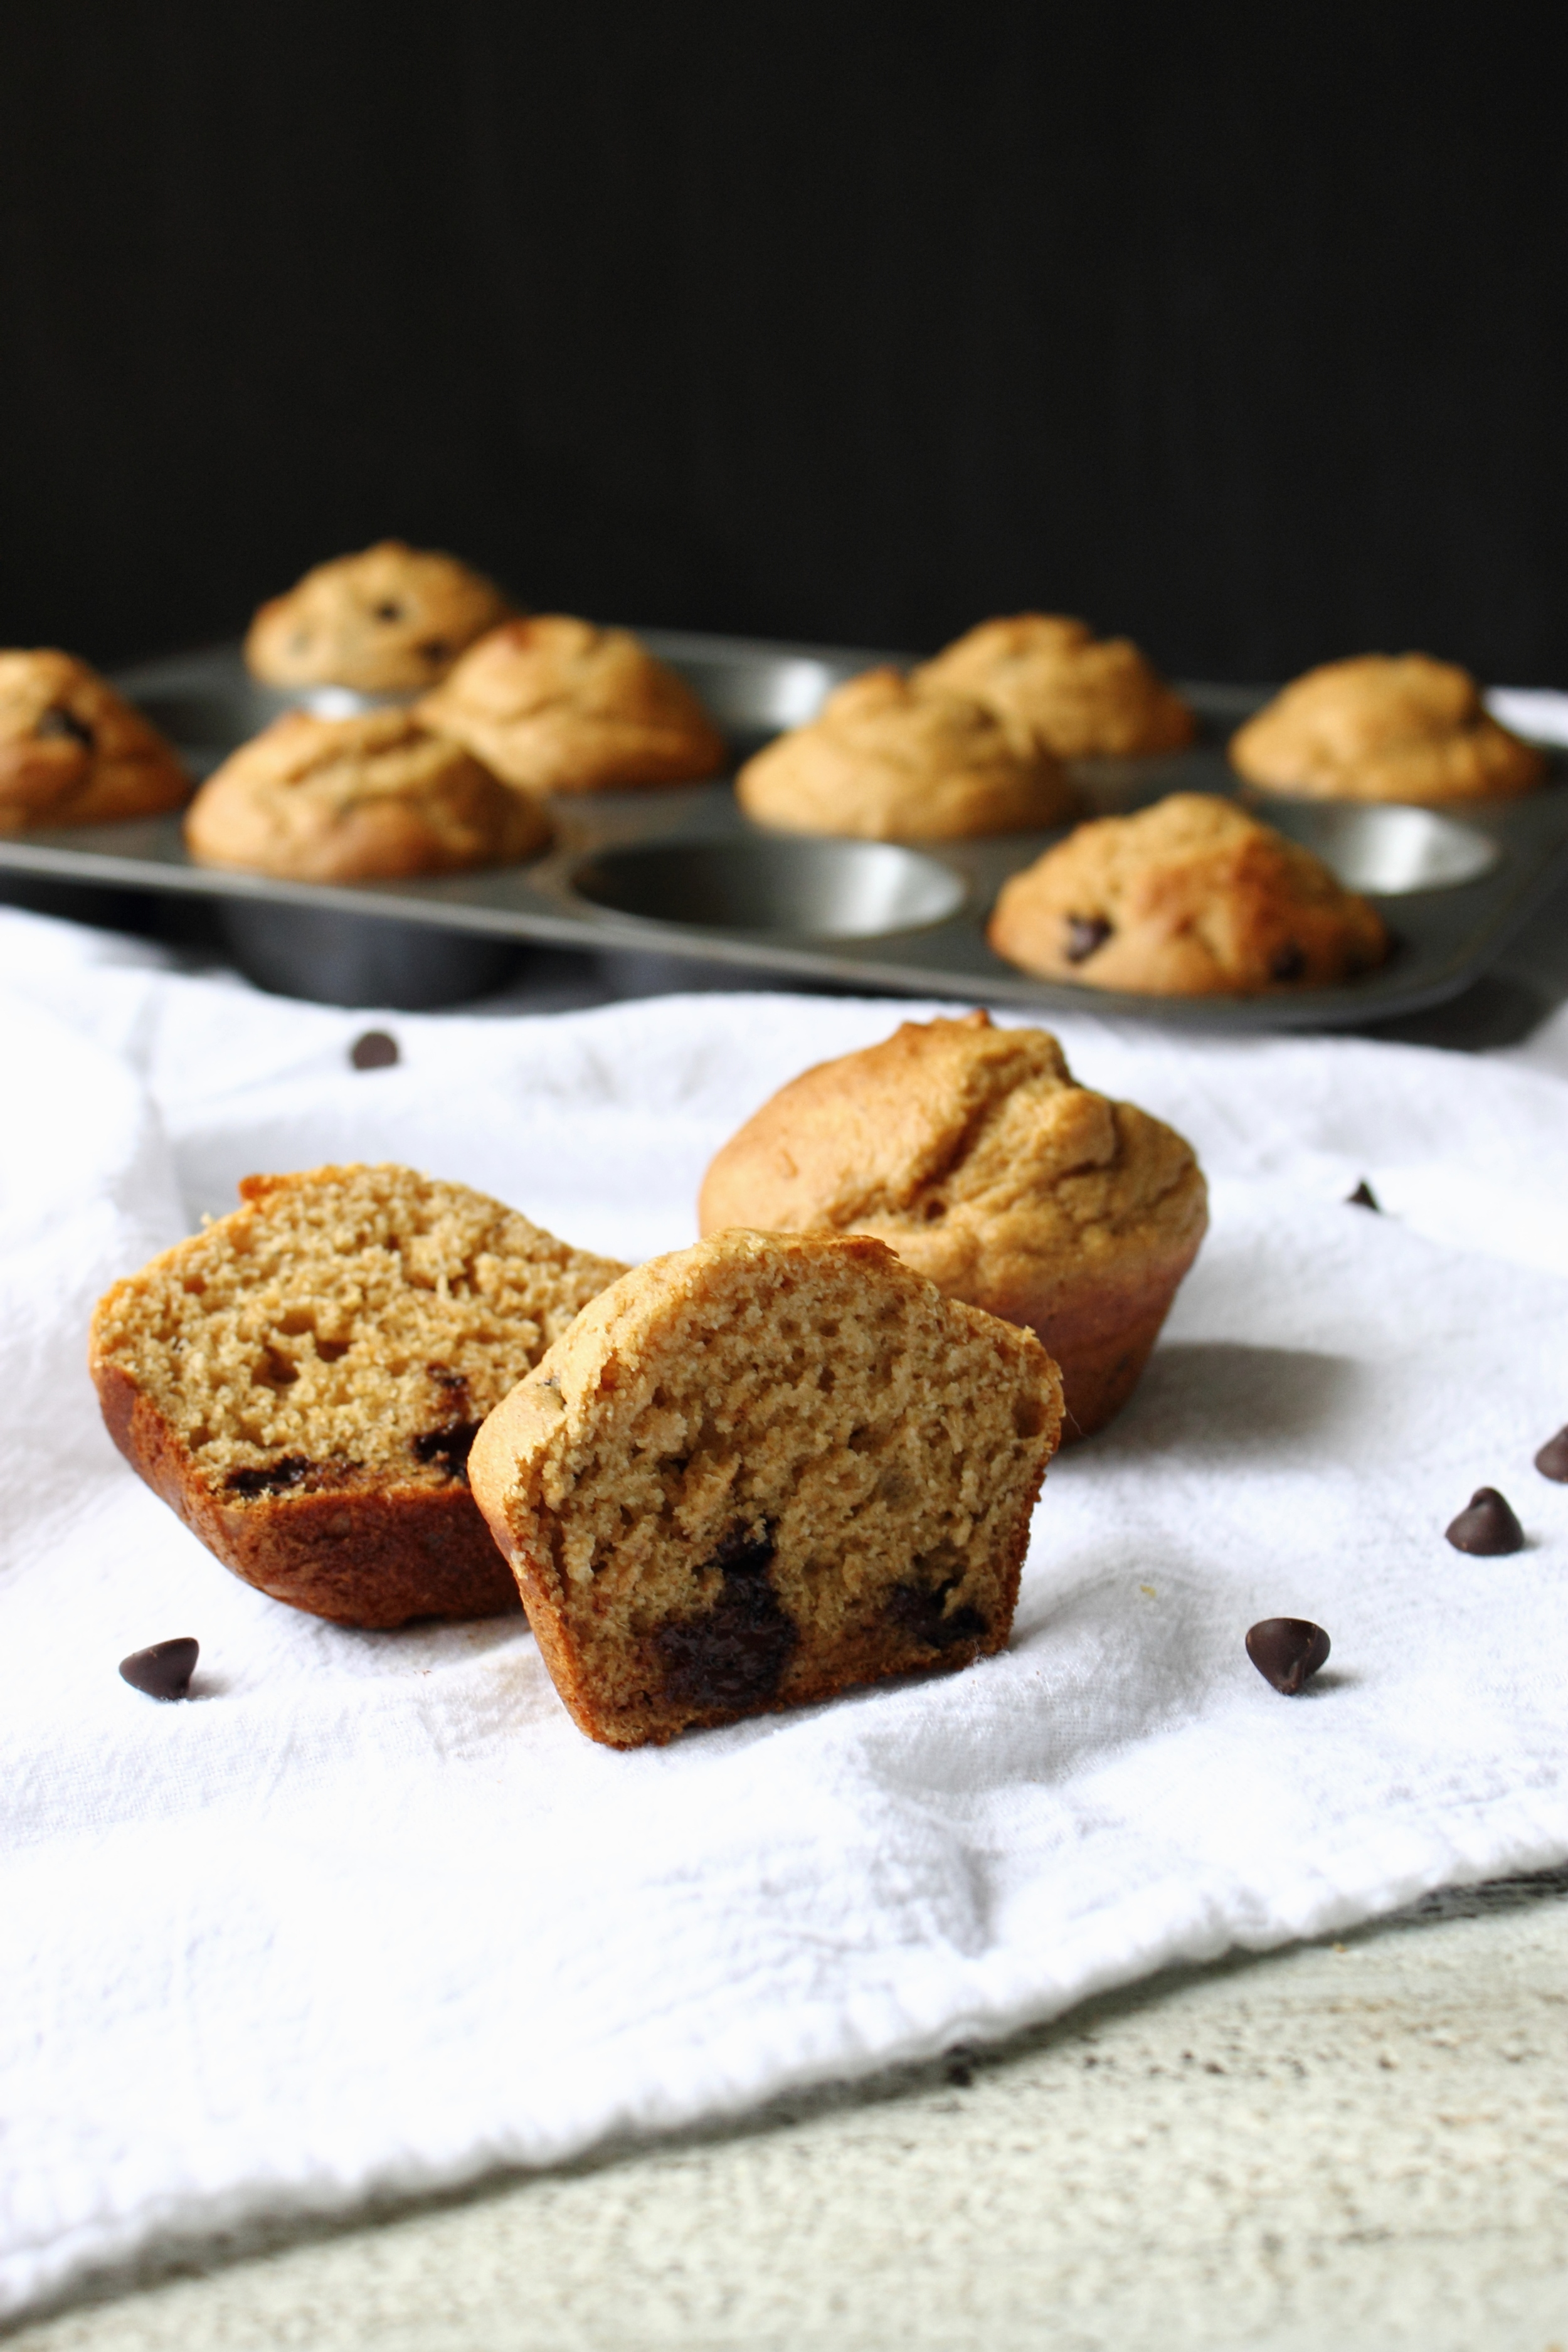 Skinny Banana and Chocolate Chip Muffins: My Diary of Us